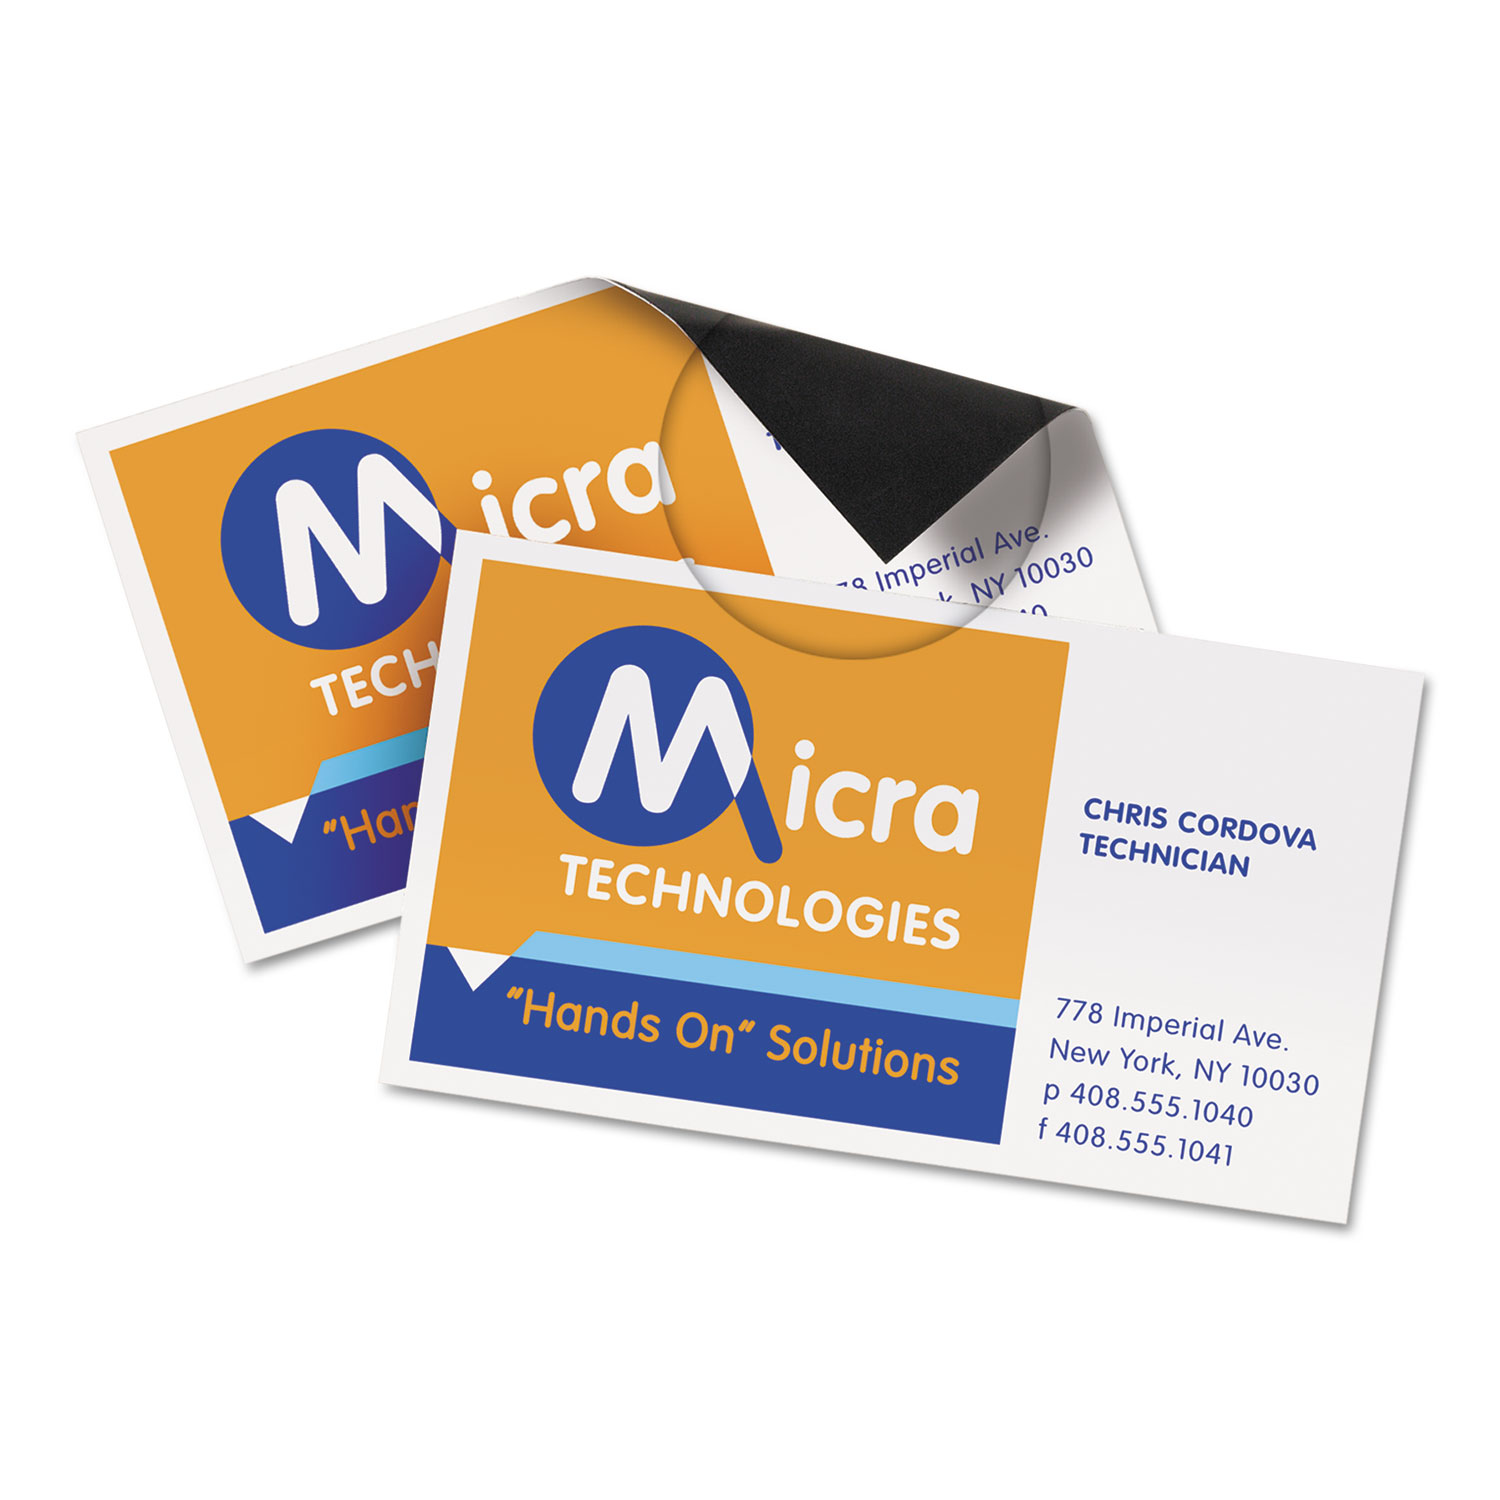 OFFICE SUPPLIES CARDS & CARD STORAGE CARDS INDEX